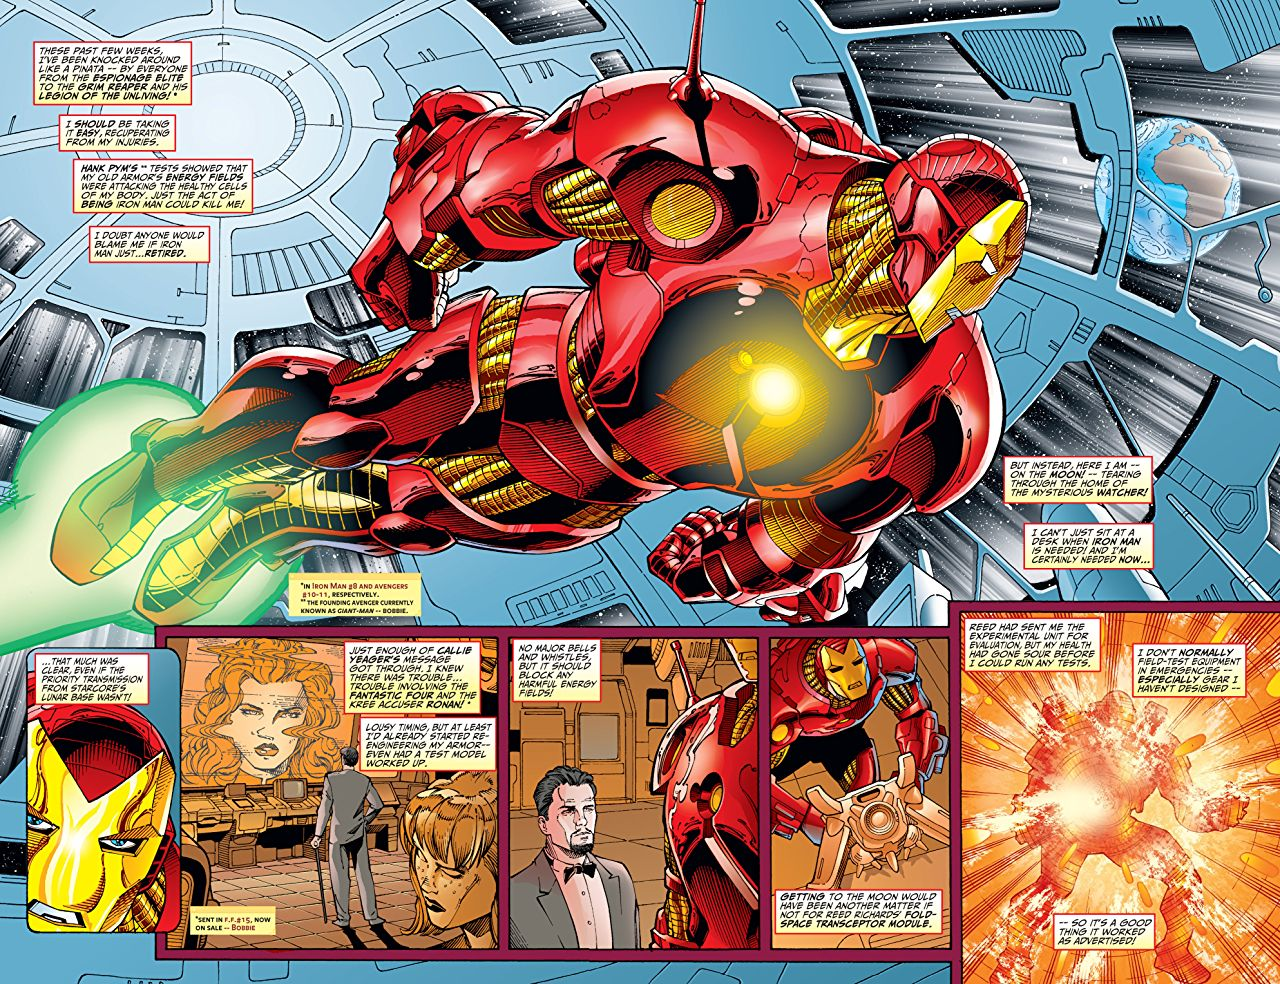 Iron Man: Heroes Return - The Complete Collection Vol. 1 Review